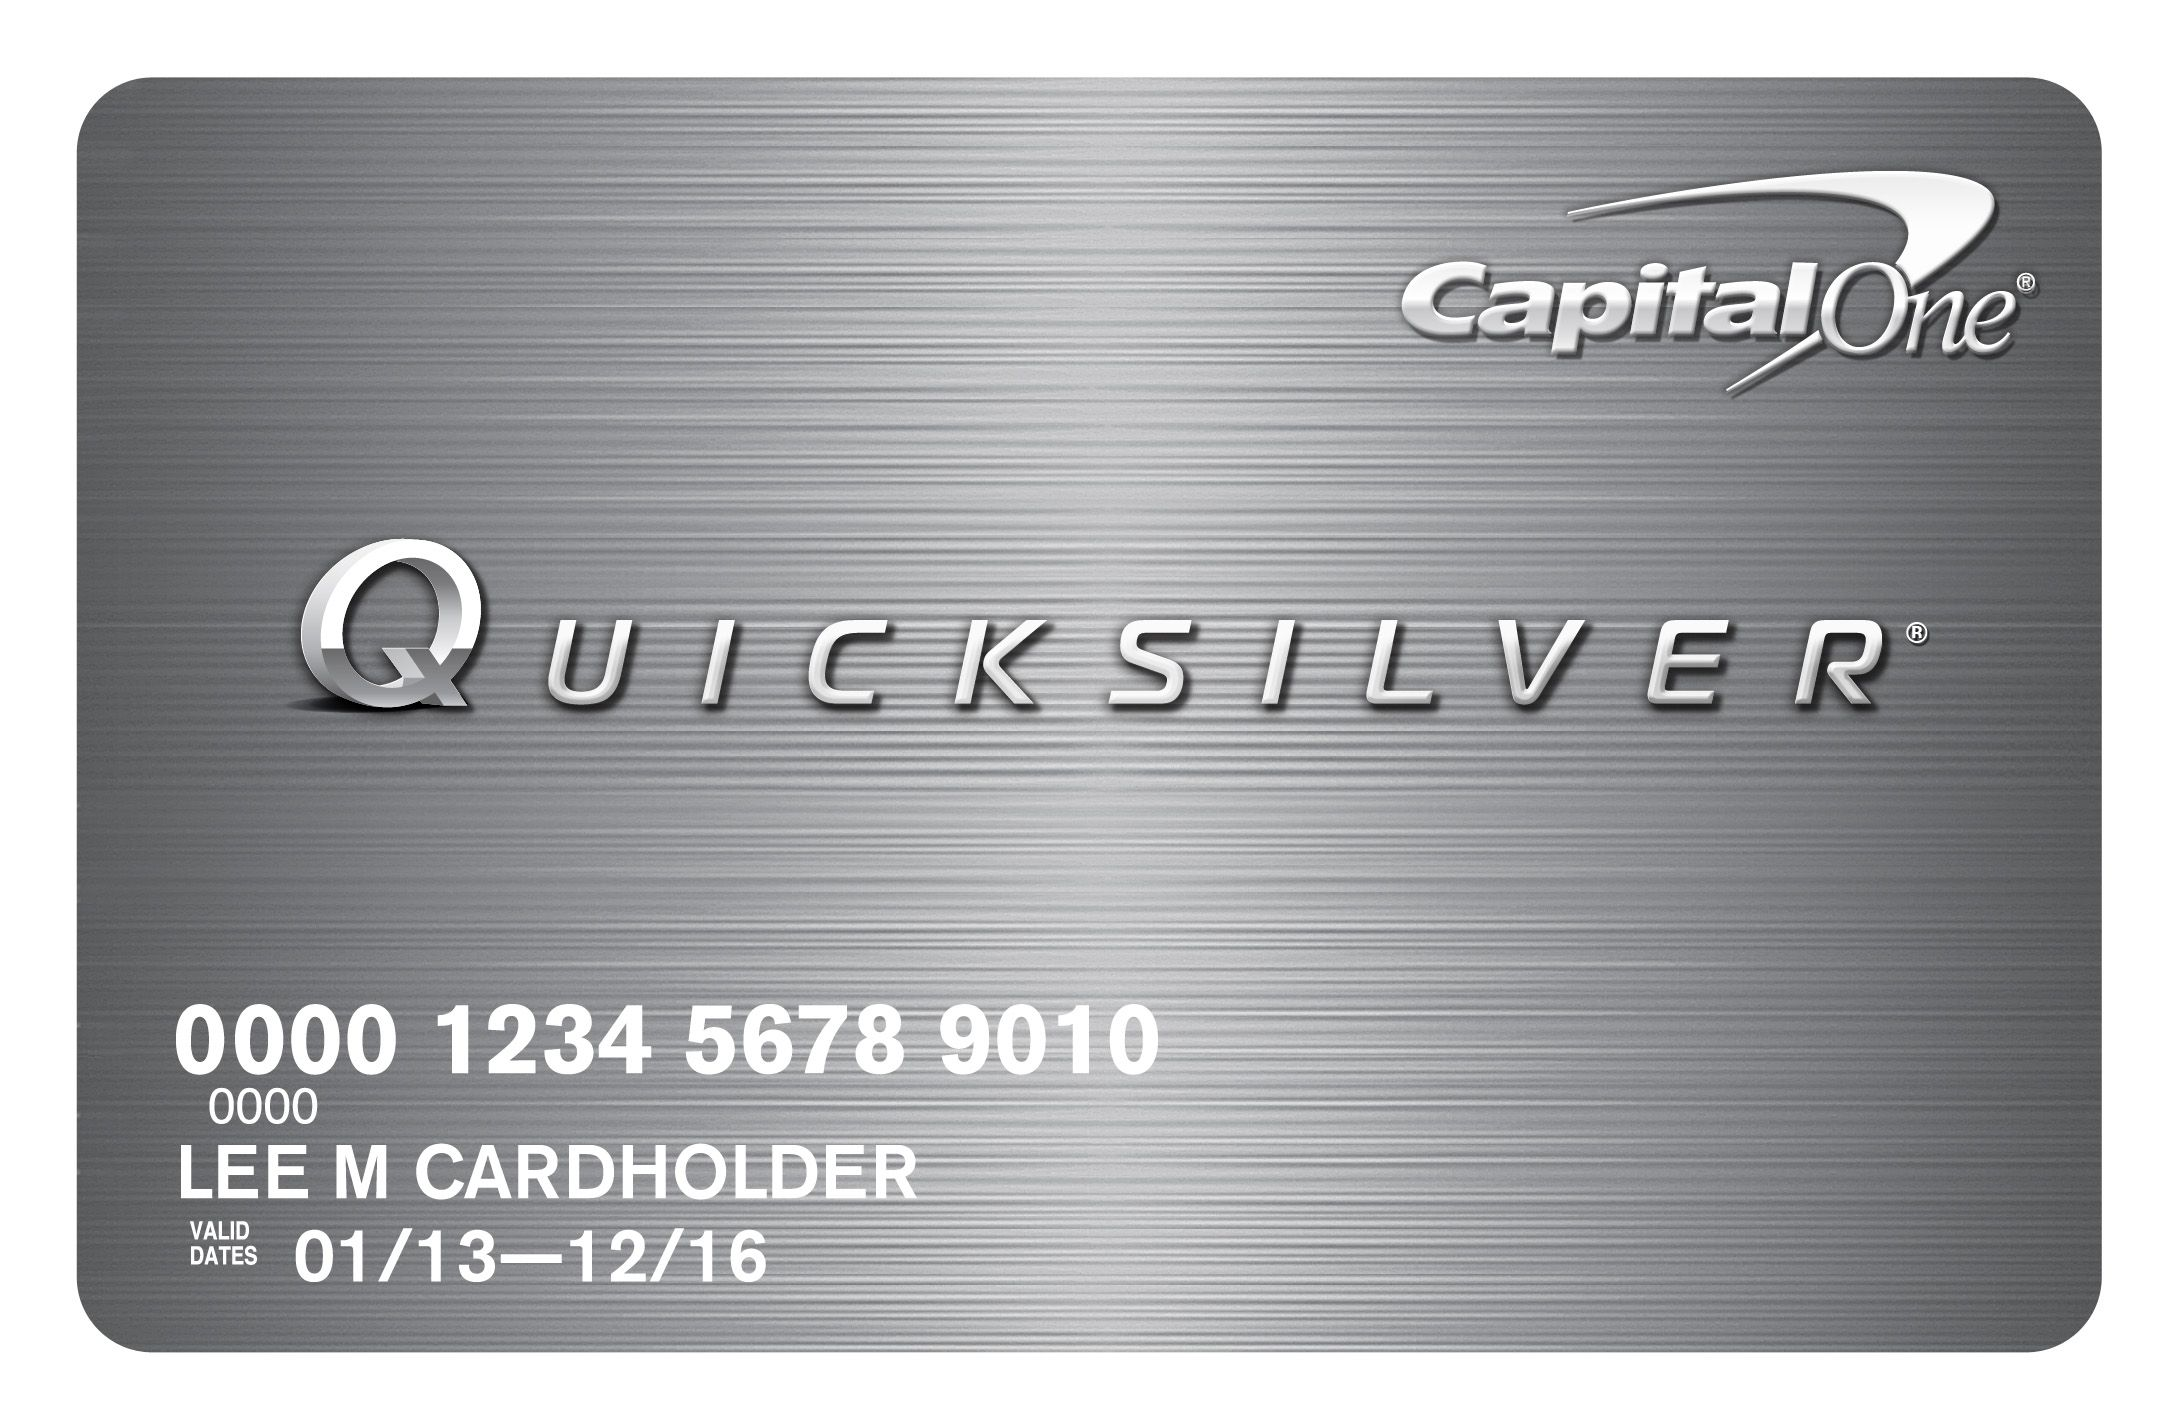 capital one credit cards, bank, and loans personal and